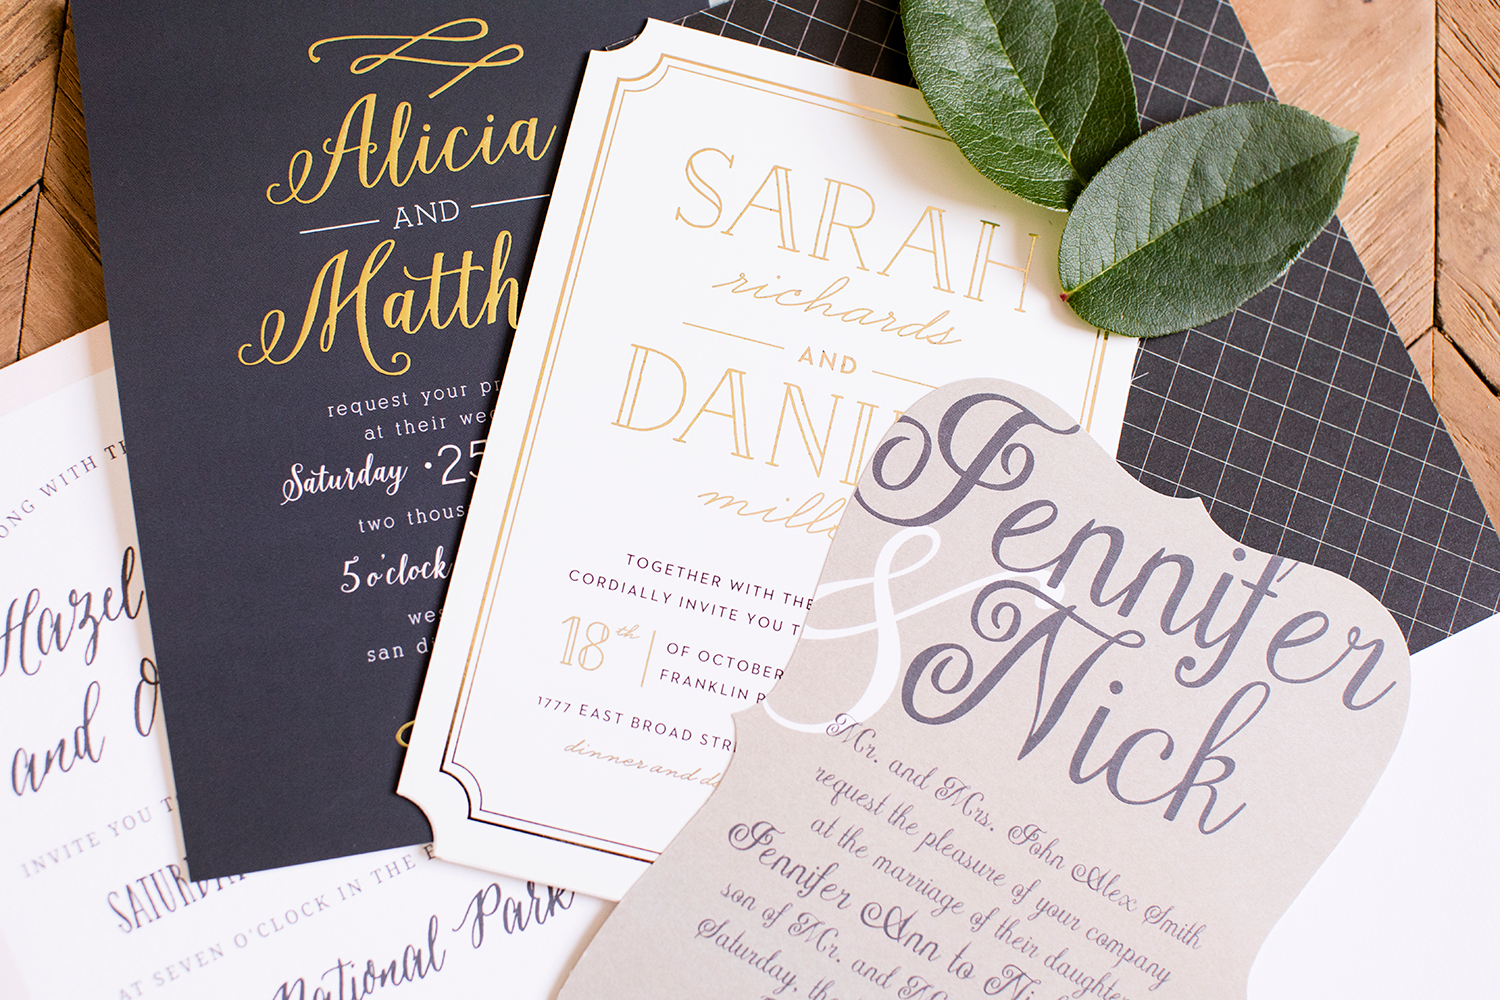 Best Online Wedding Invitations JD Photo LLC Richmond Virginia